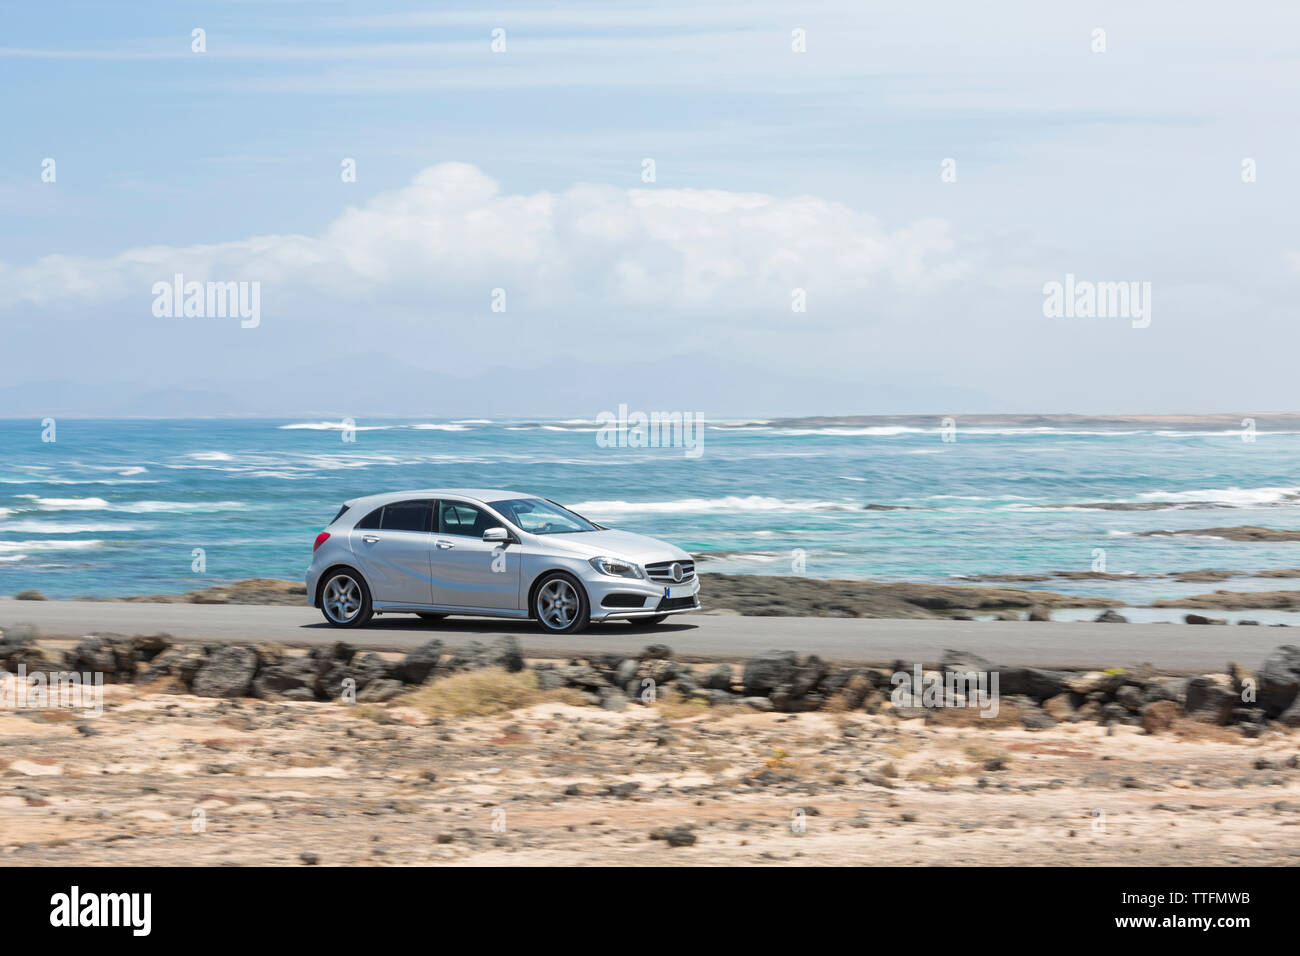 Grey car driving empty paved road with ocean in the background - Stock Image